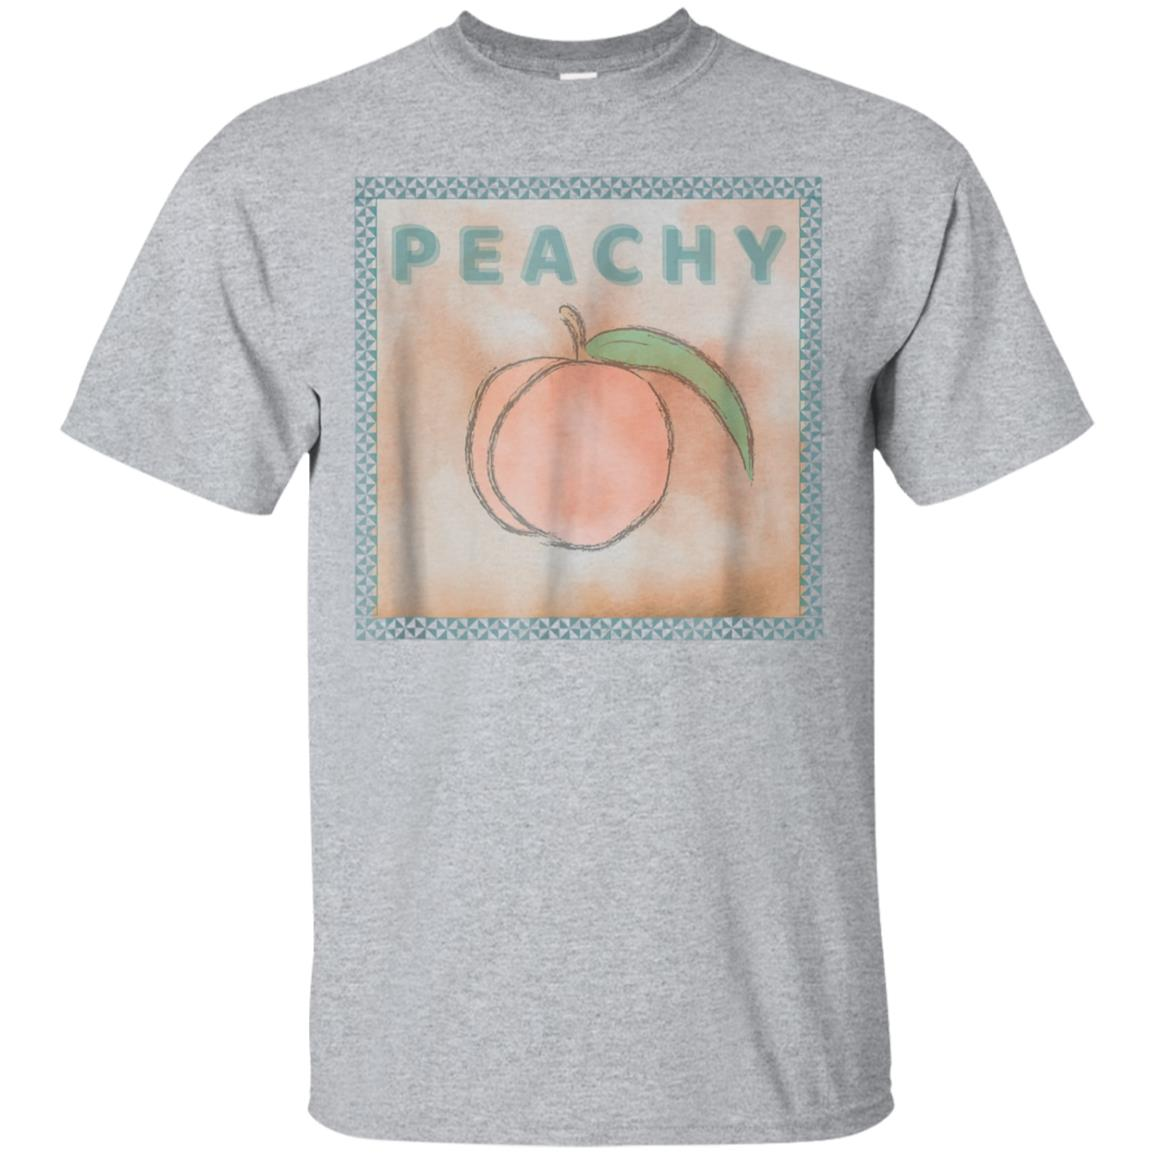 Just PEACHY - Southern Georgia Vintage Look Graphic Tee 99promocode